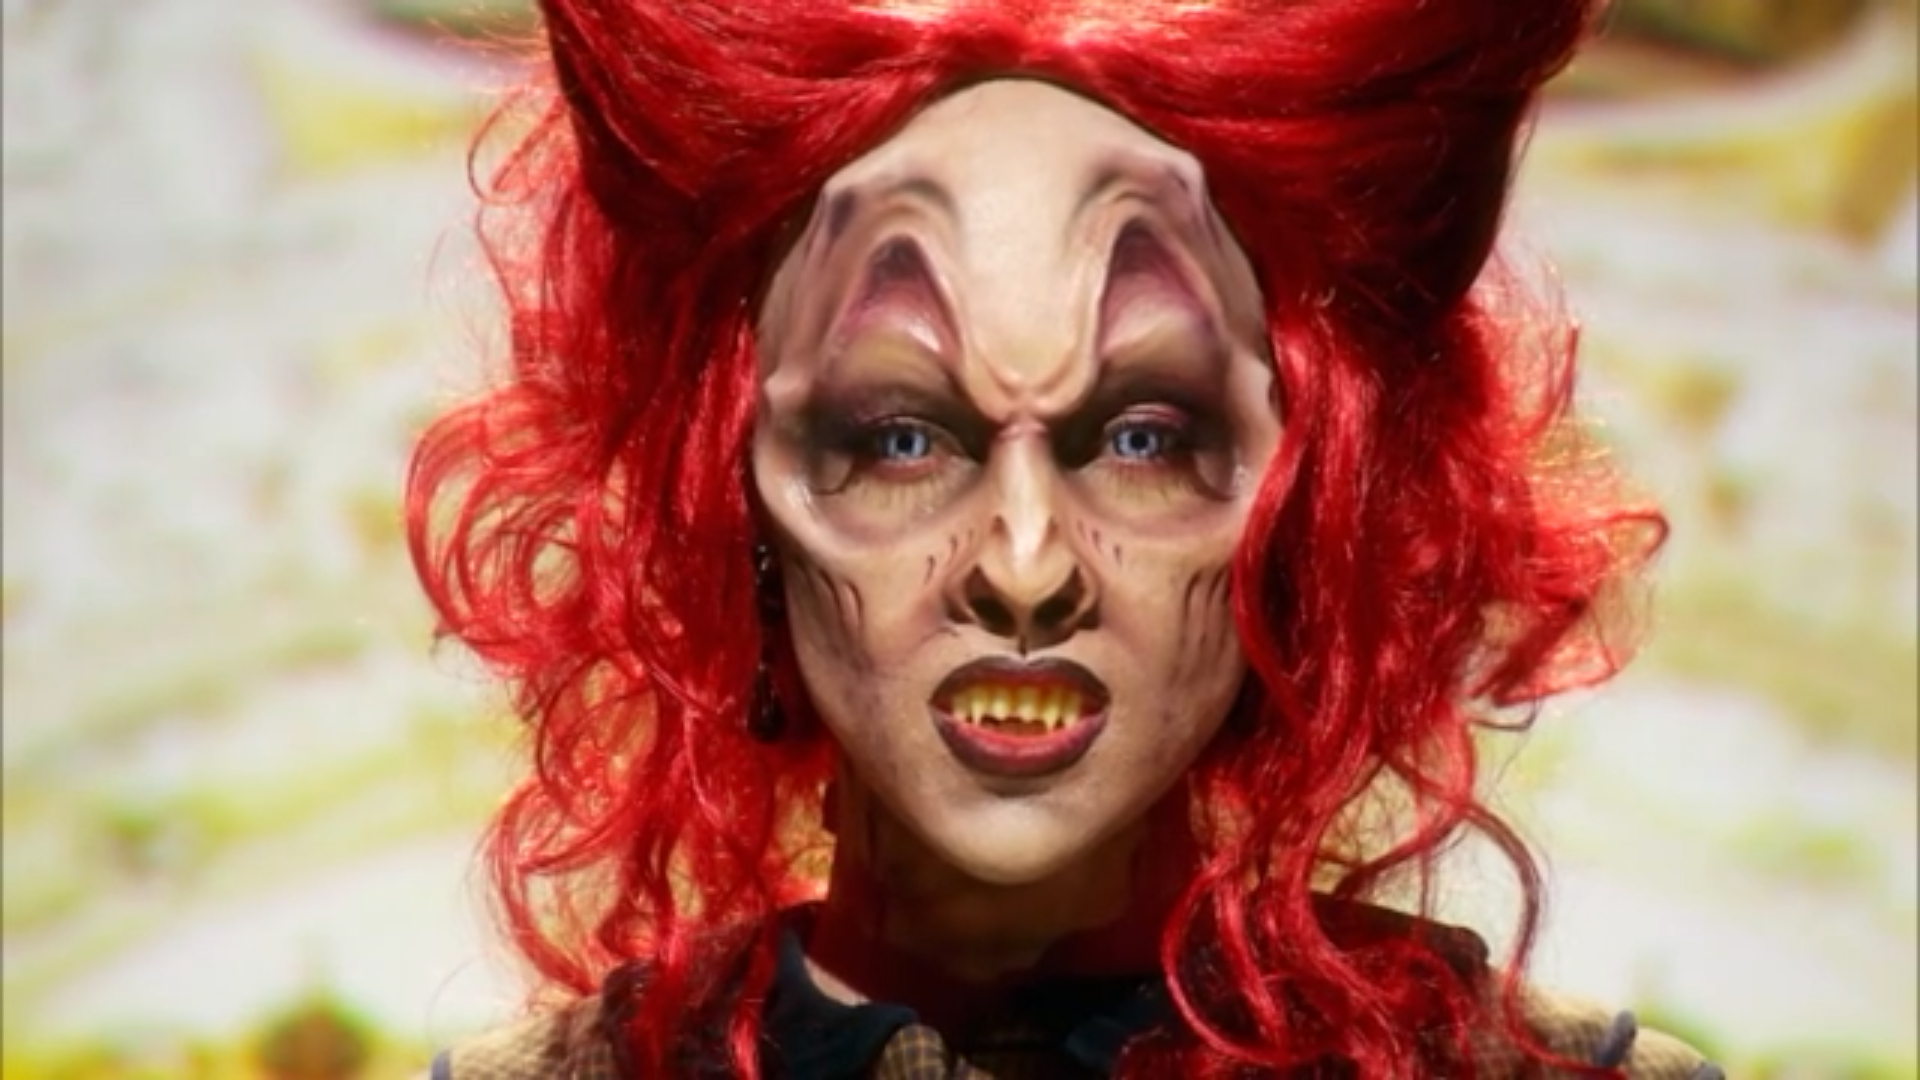 A close look at Jasmine Ringo's finished makeup